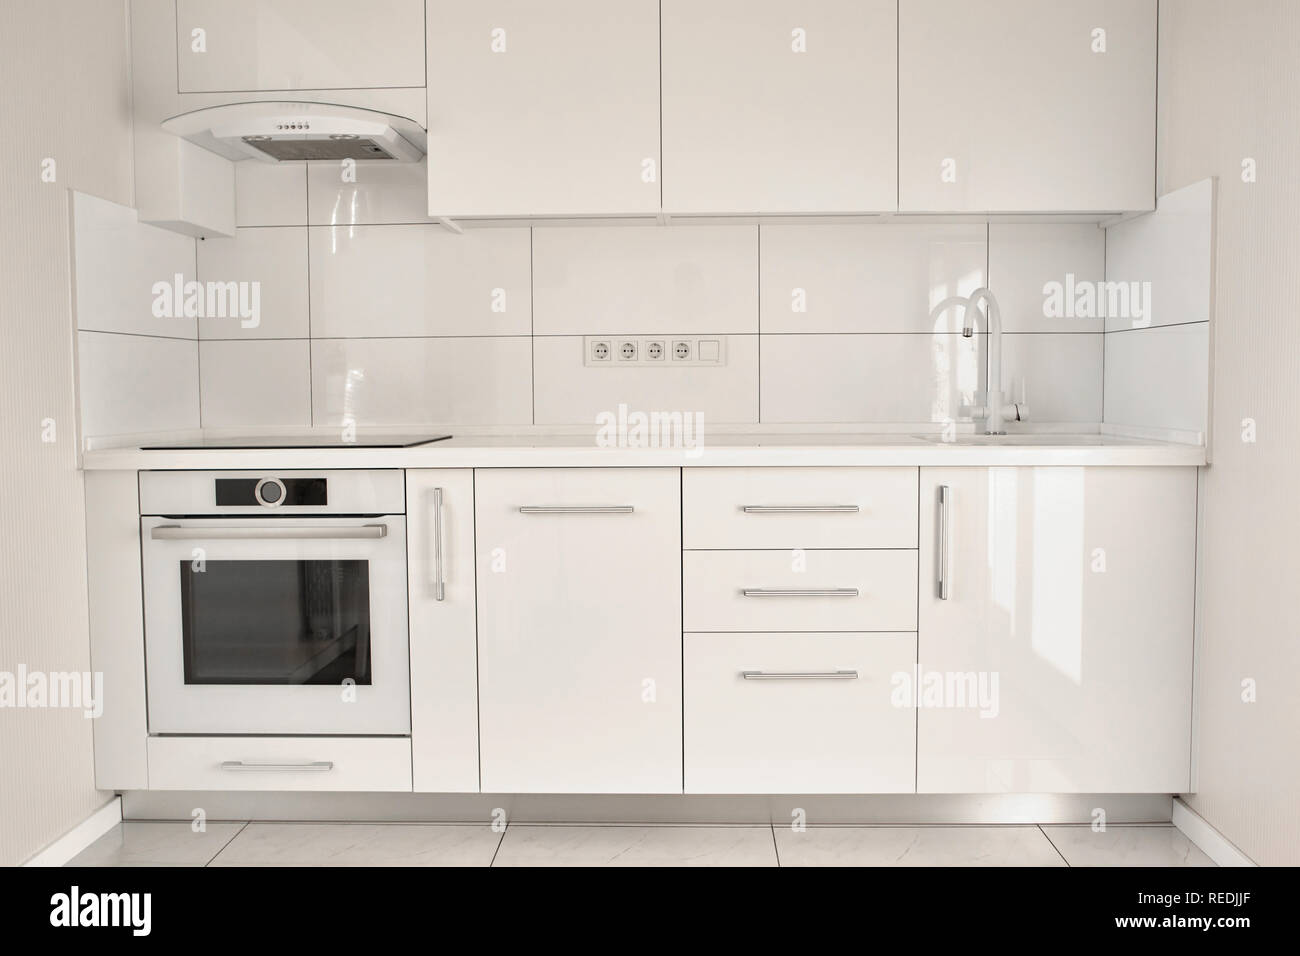 White Modern Kitchen In Contemporary Flat Interior Design Of White Modern Kitchen Minimalism In Style Stock Photo Alamy